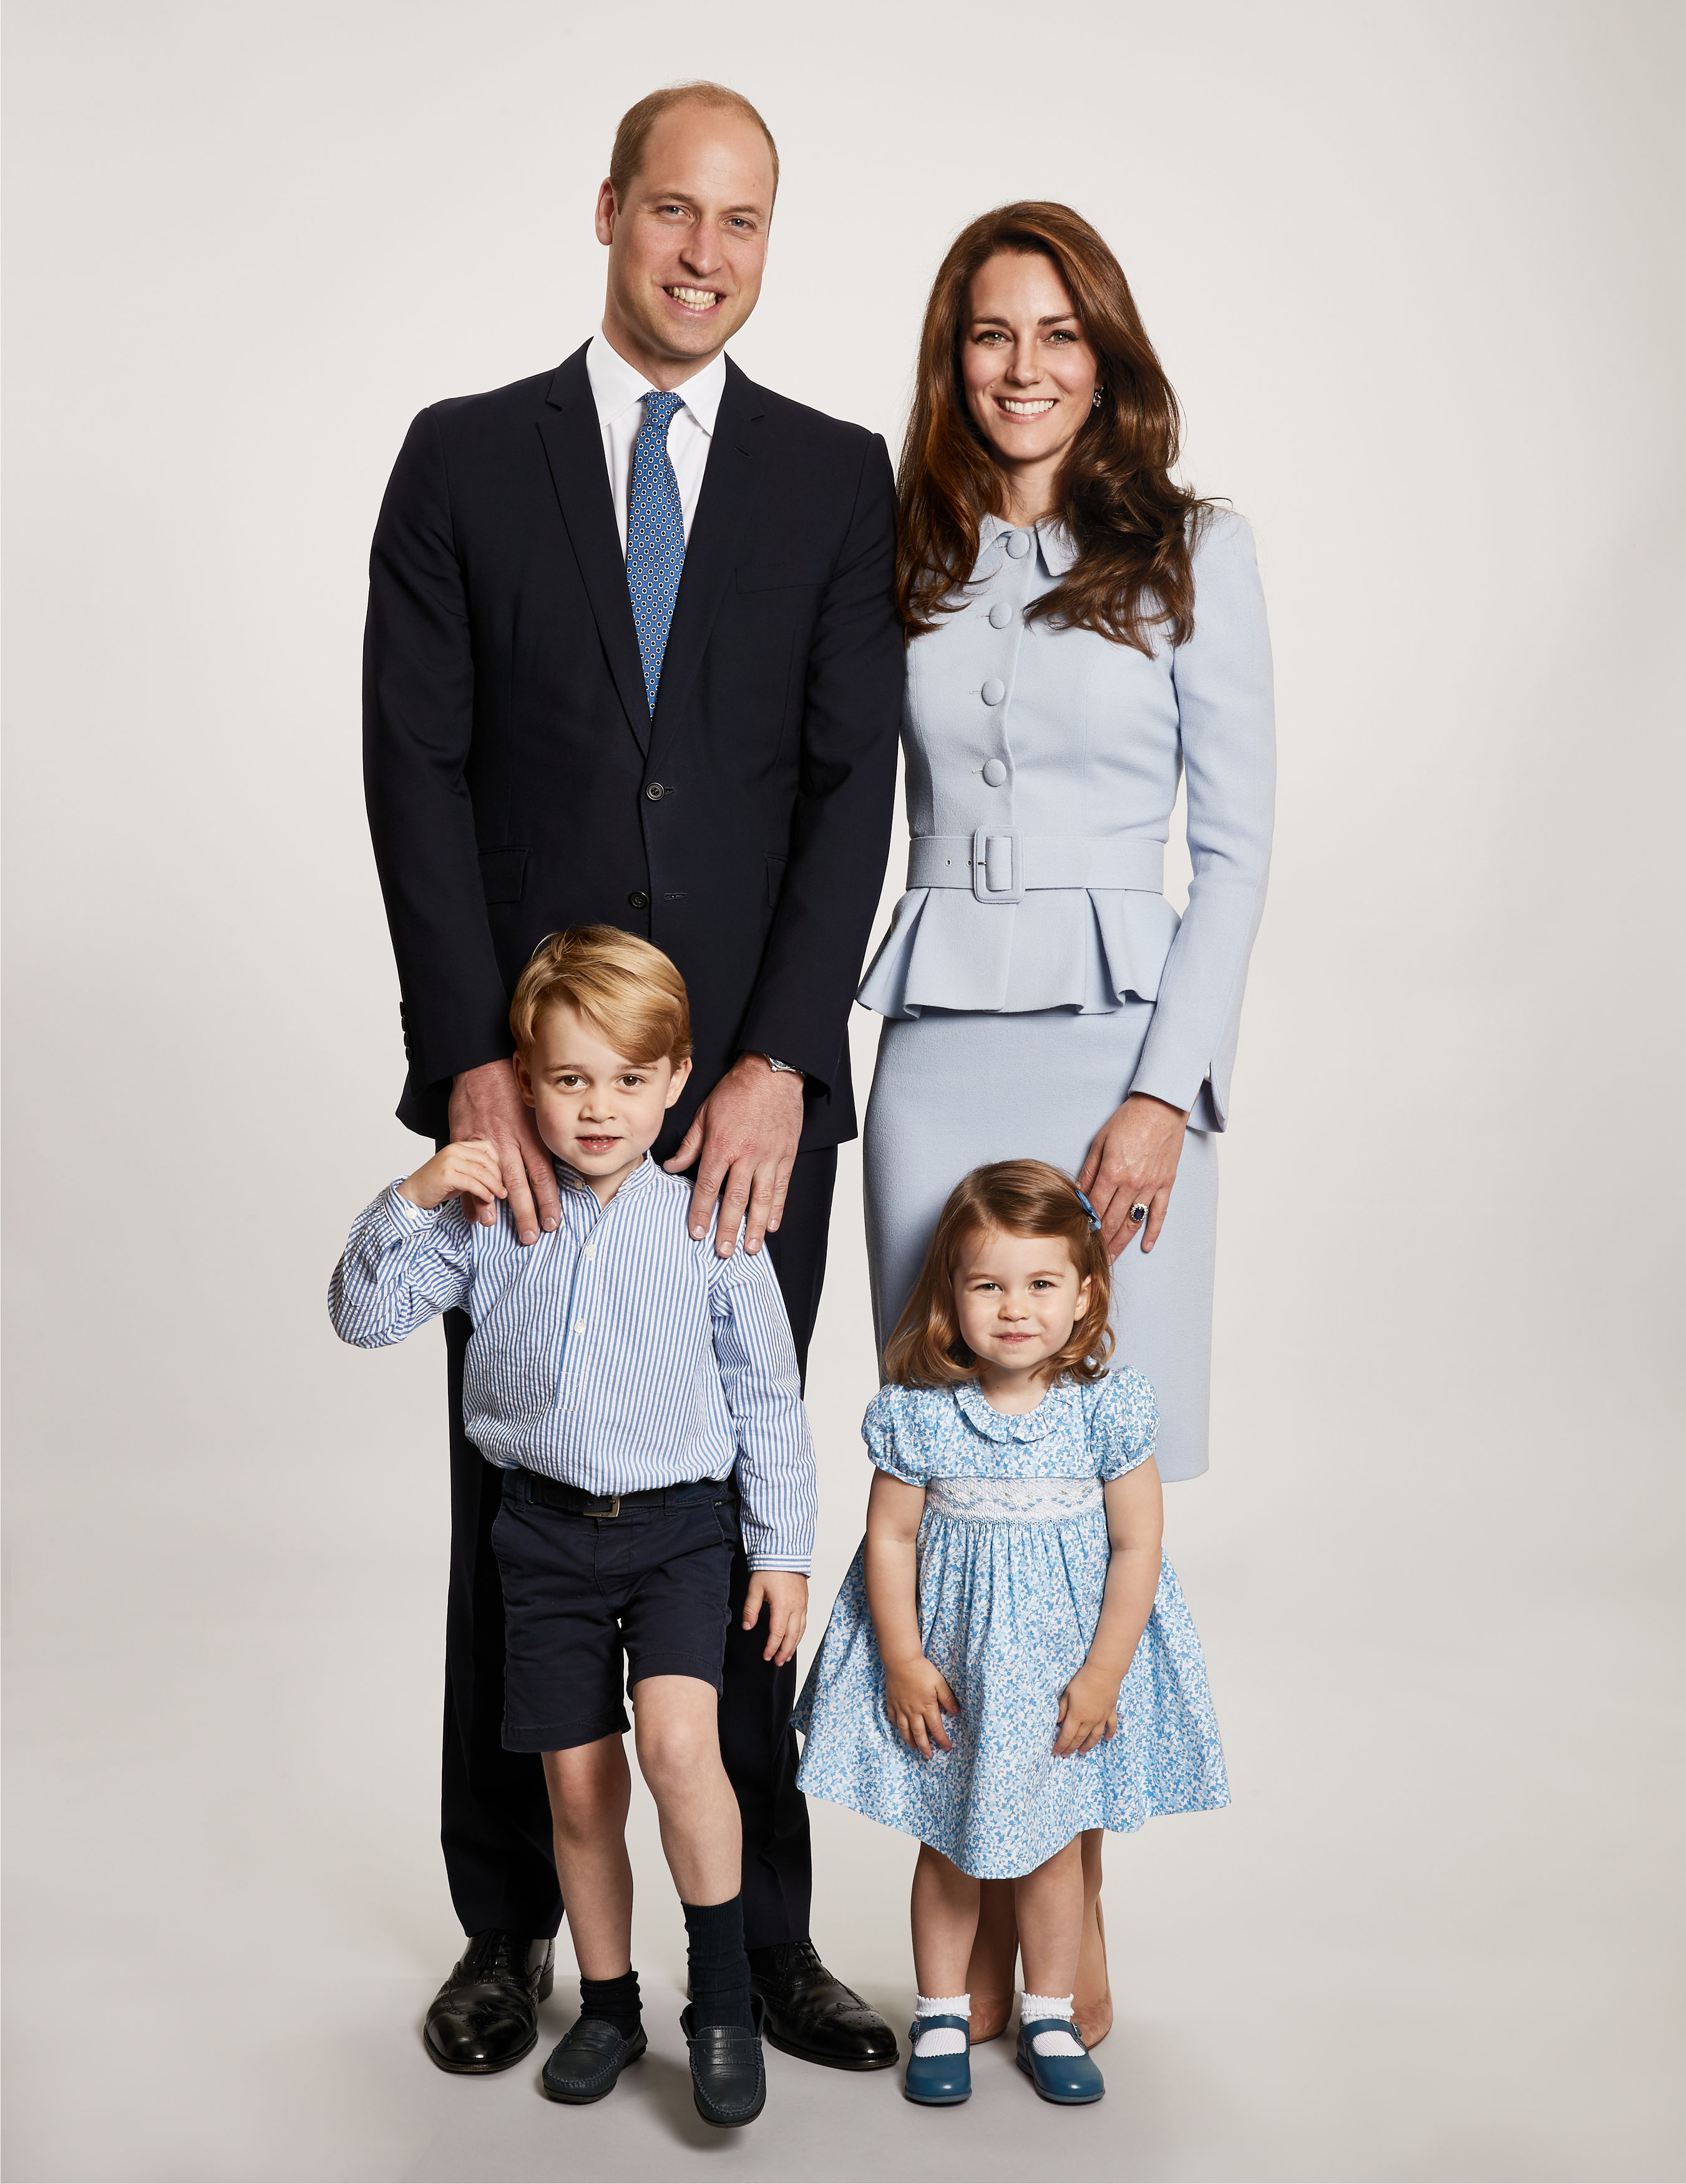 The Duke and Duchess of Cambridge's 2017 Christmas card